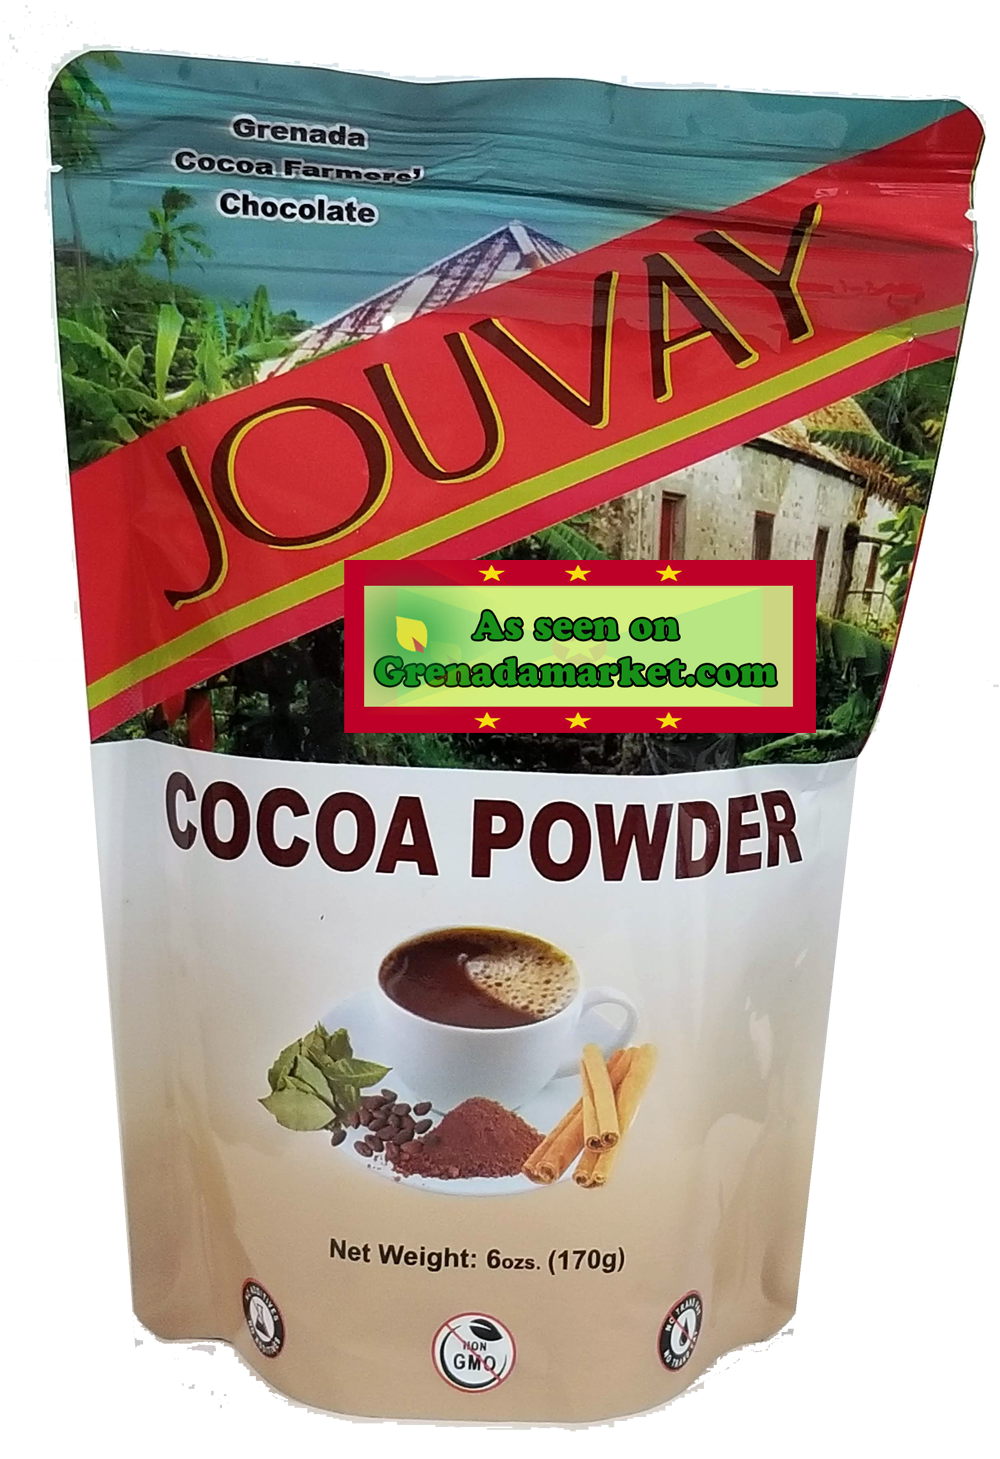 100% Cocoa Powder - Natural in 6 Oz Resealable Pouch - Grenada, Caribbean